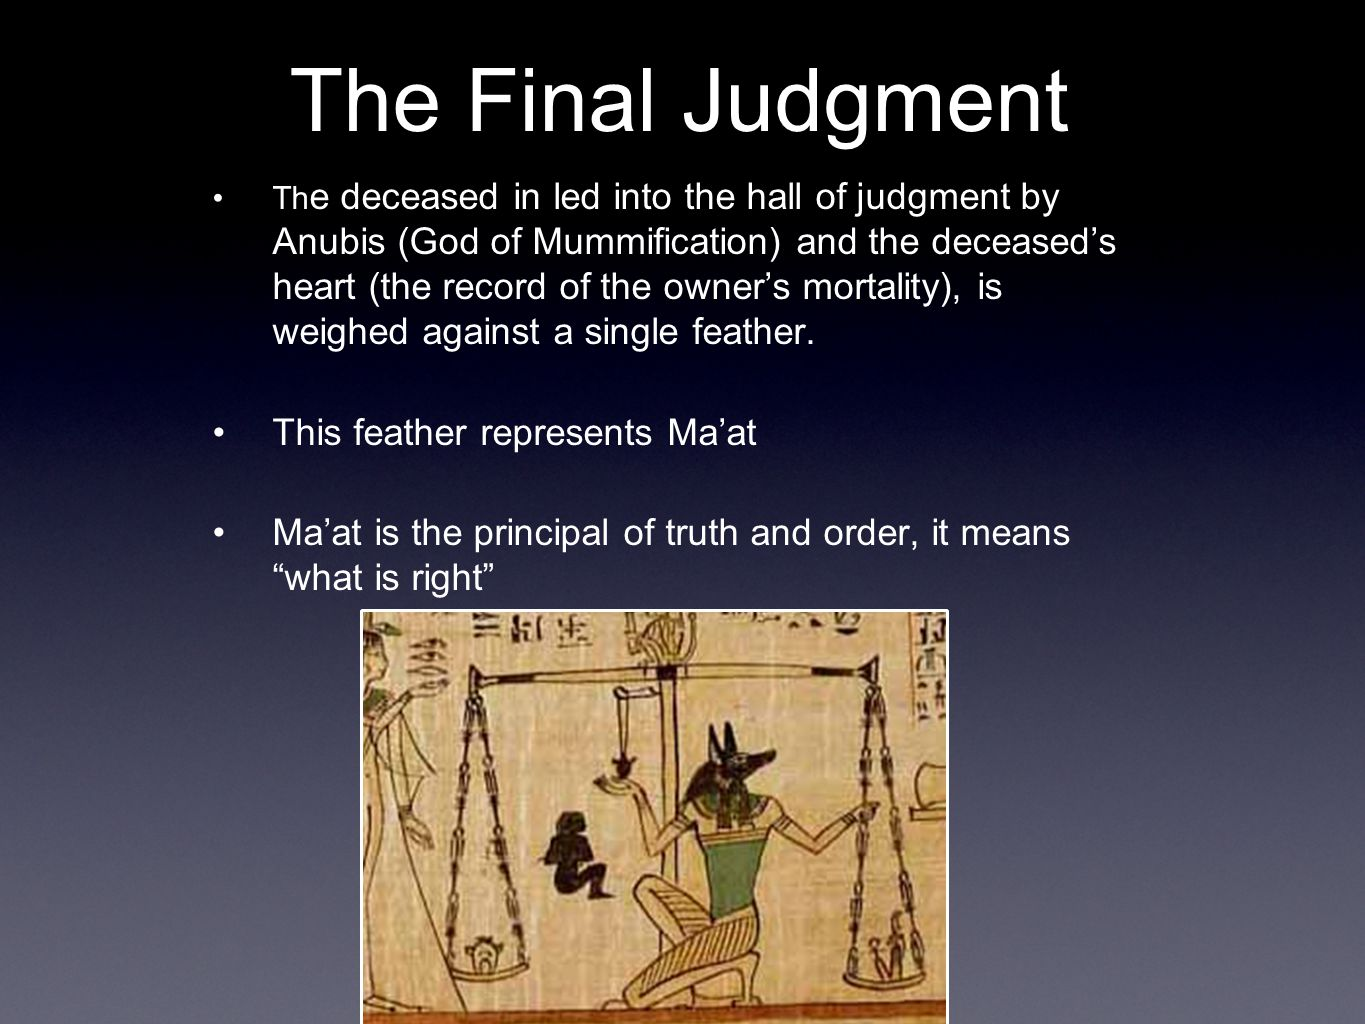 The Final Judgment Th e deceased in led into the hall of judgment by Anubis (God of Mummification) and the deceased's heart (the record of the owner's mortality), is weighed against a single feather.